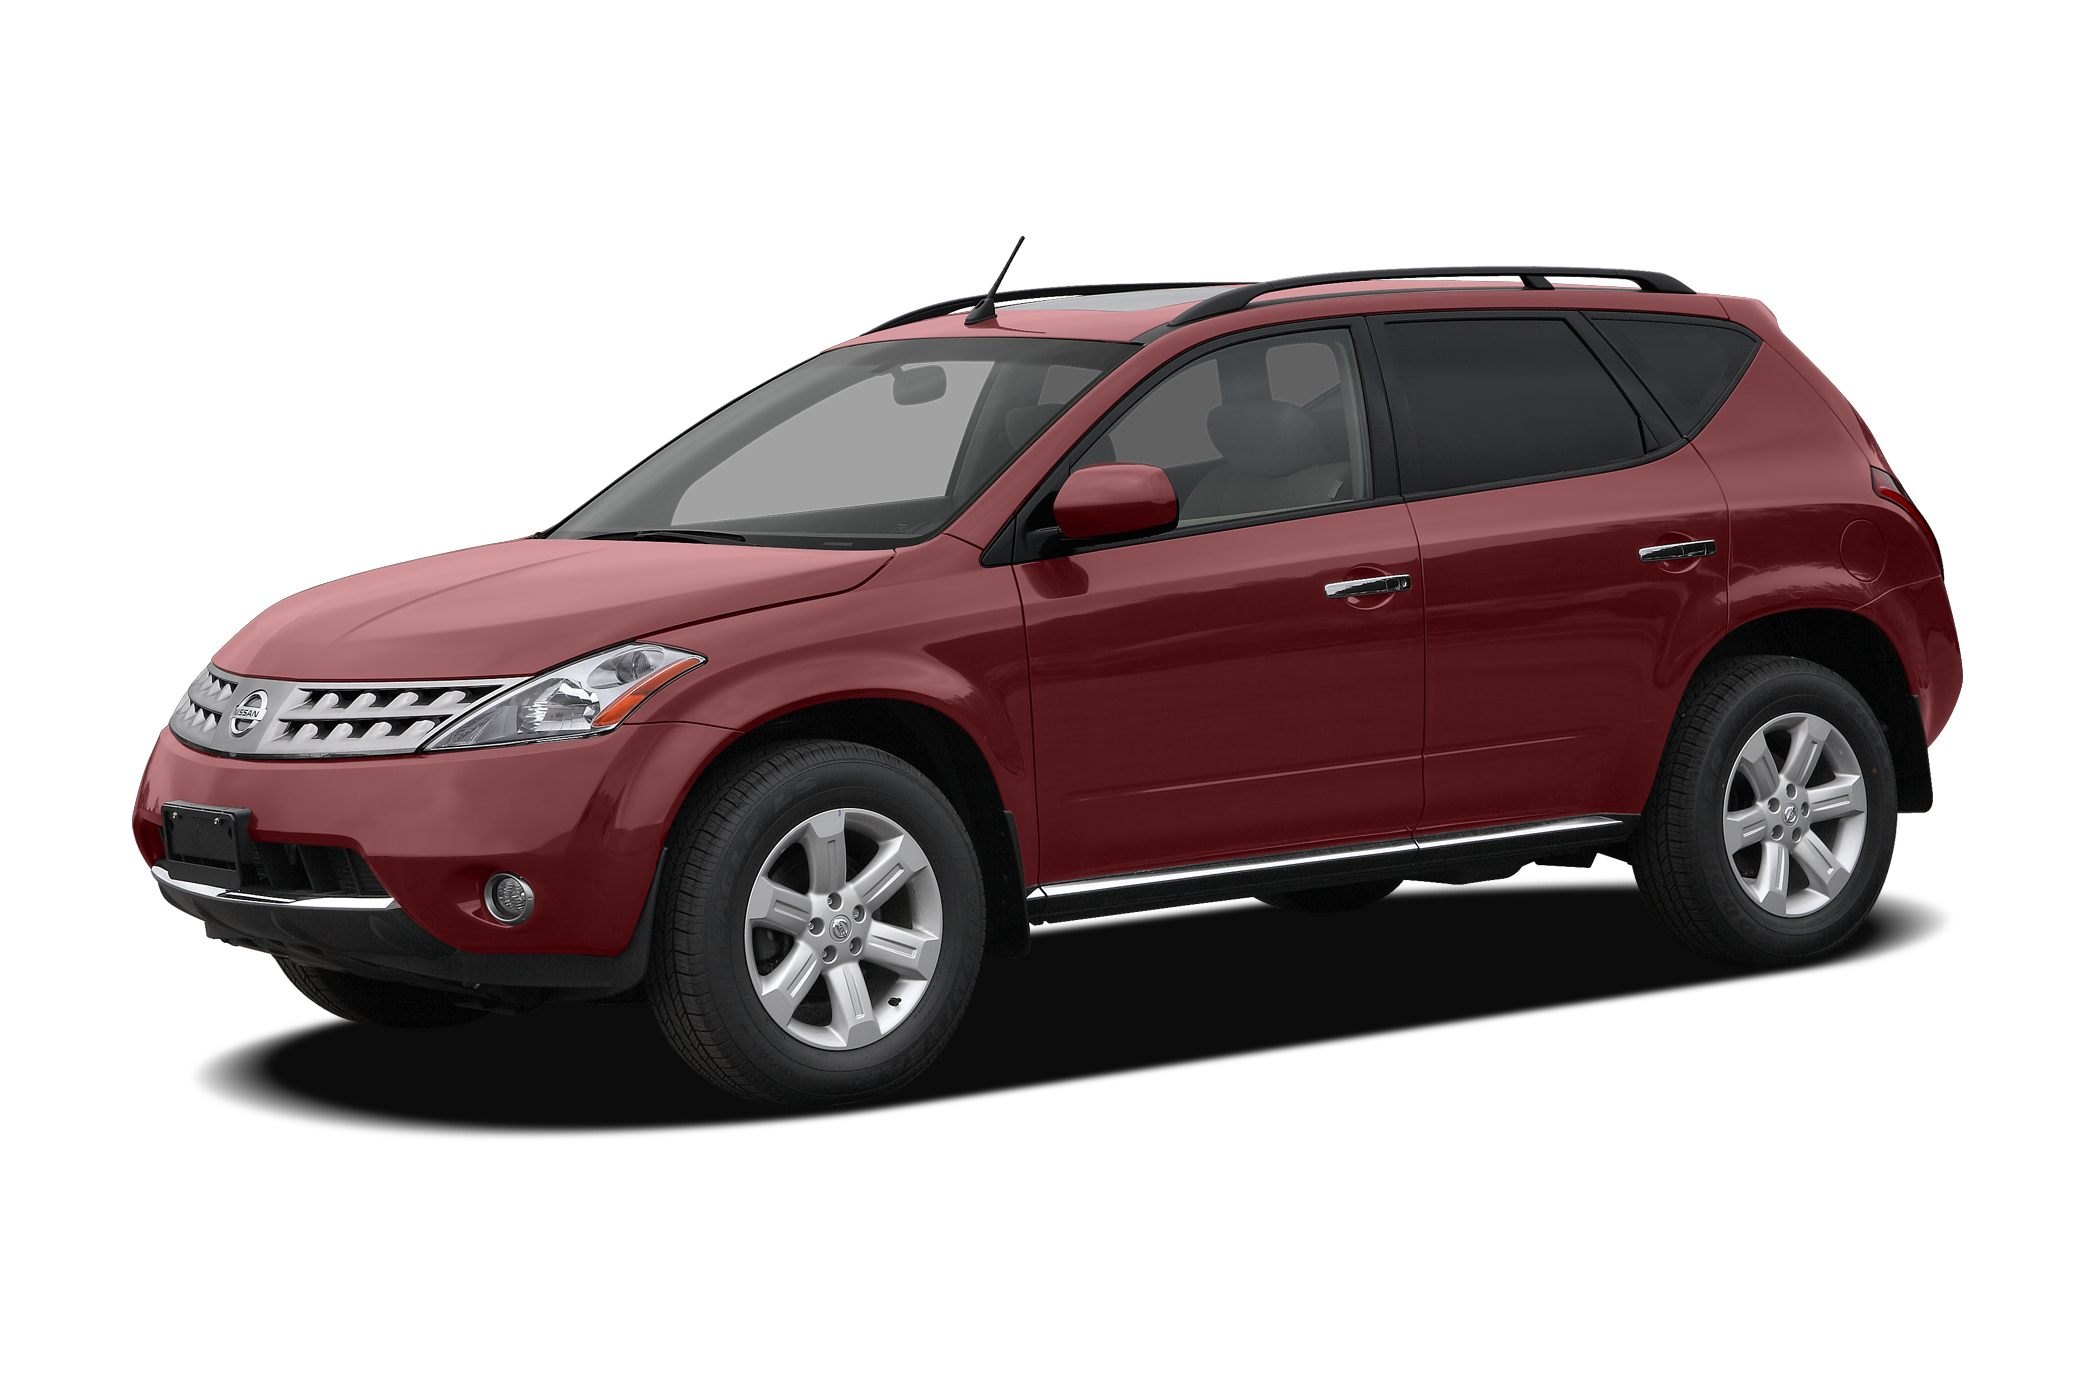 2007 Nissan Murano S S trim FUEL EFFICIENT 24 MPG Hwy19 MPG City CD Player Dual Zone AC All W